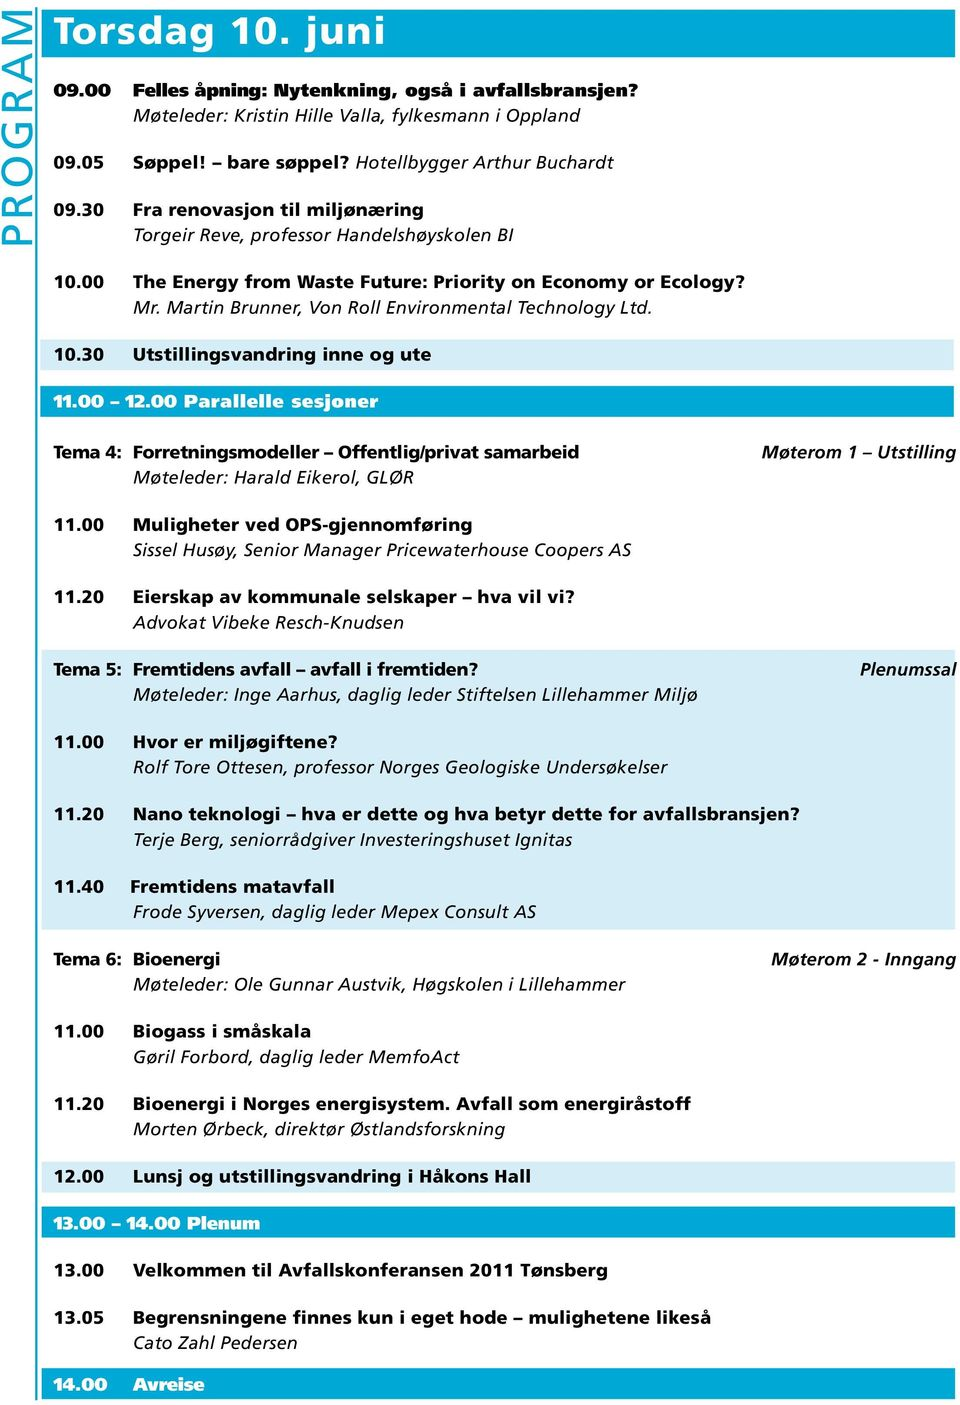 Martin Brunner, Von Roll Environmental Technology Ltd. 10.30 Utstillingsvandring inne og ute 11.00 12.